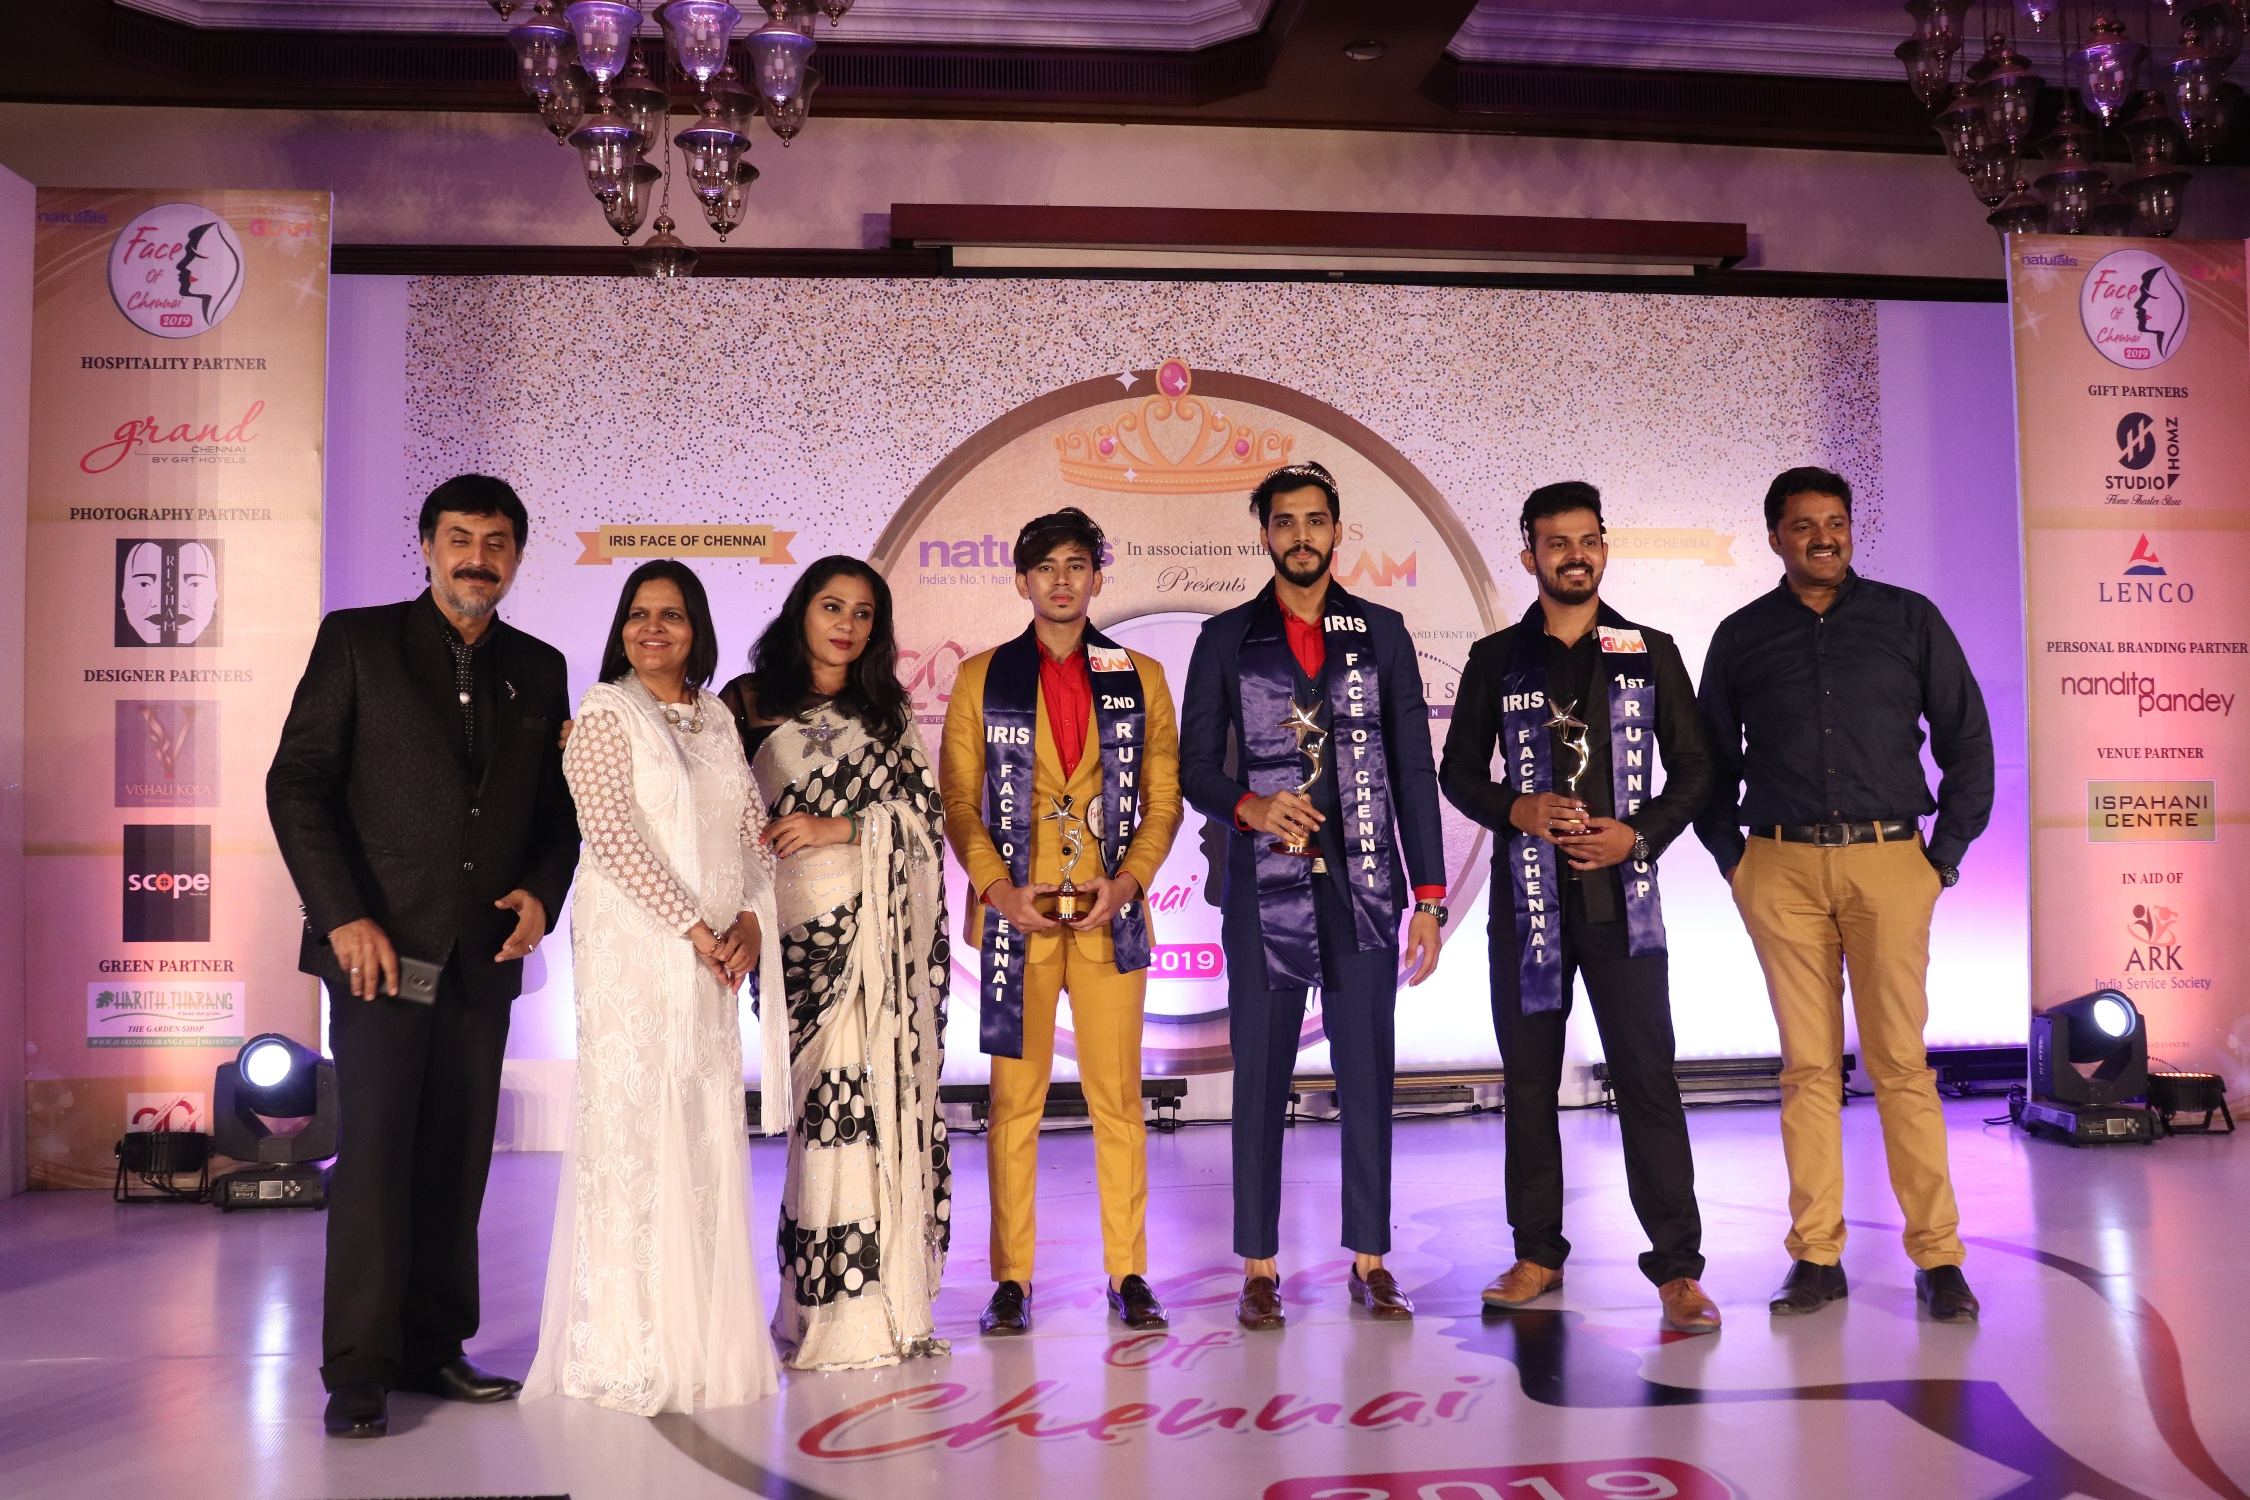 NATURALS FACE OF CHENNAI WINNERS WITH GUESTS